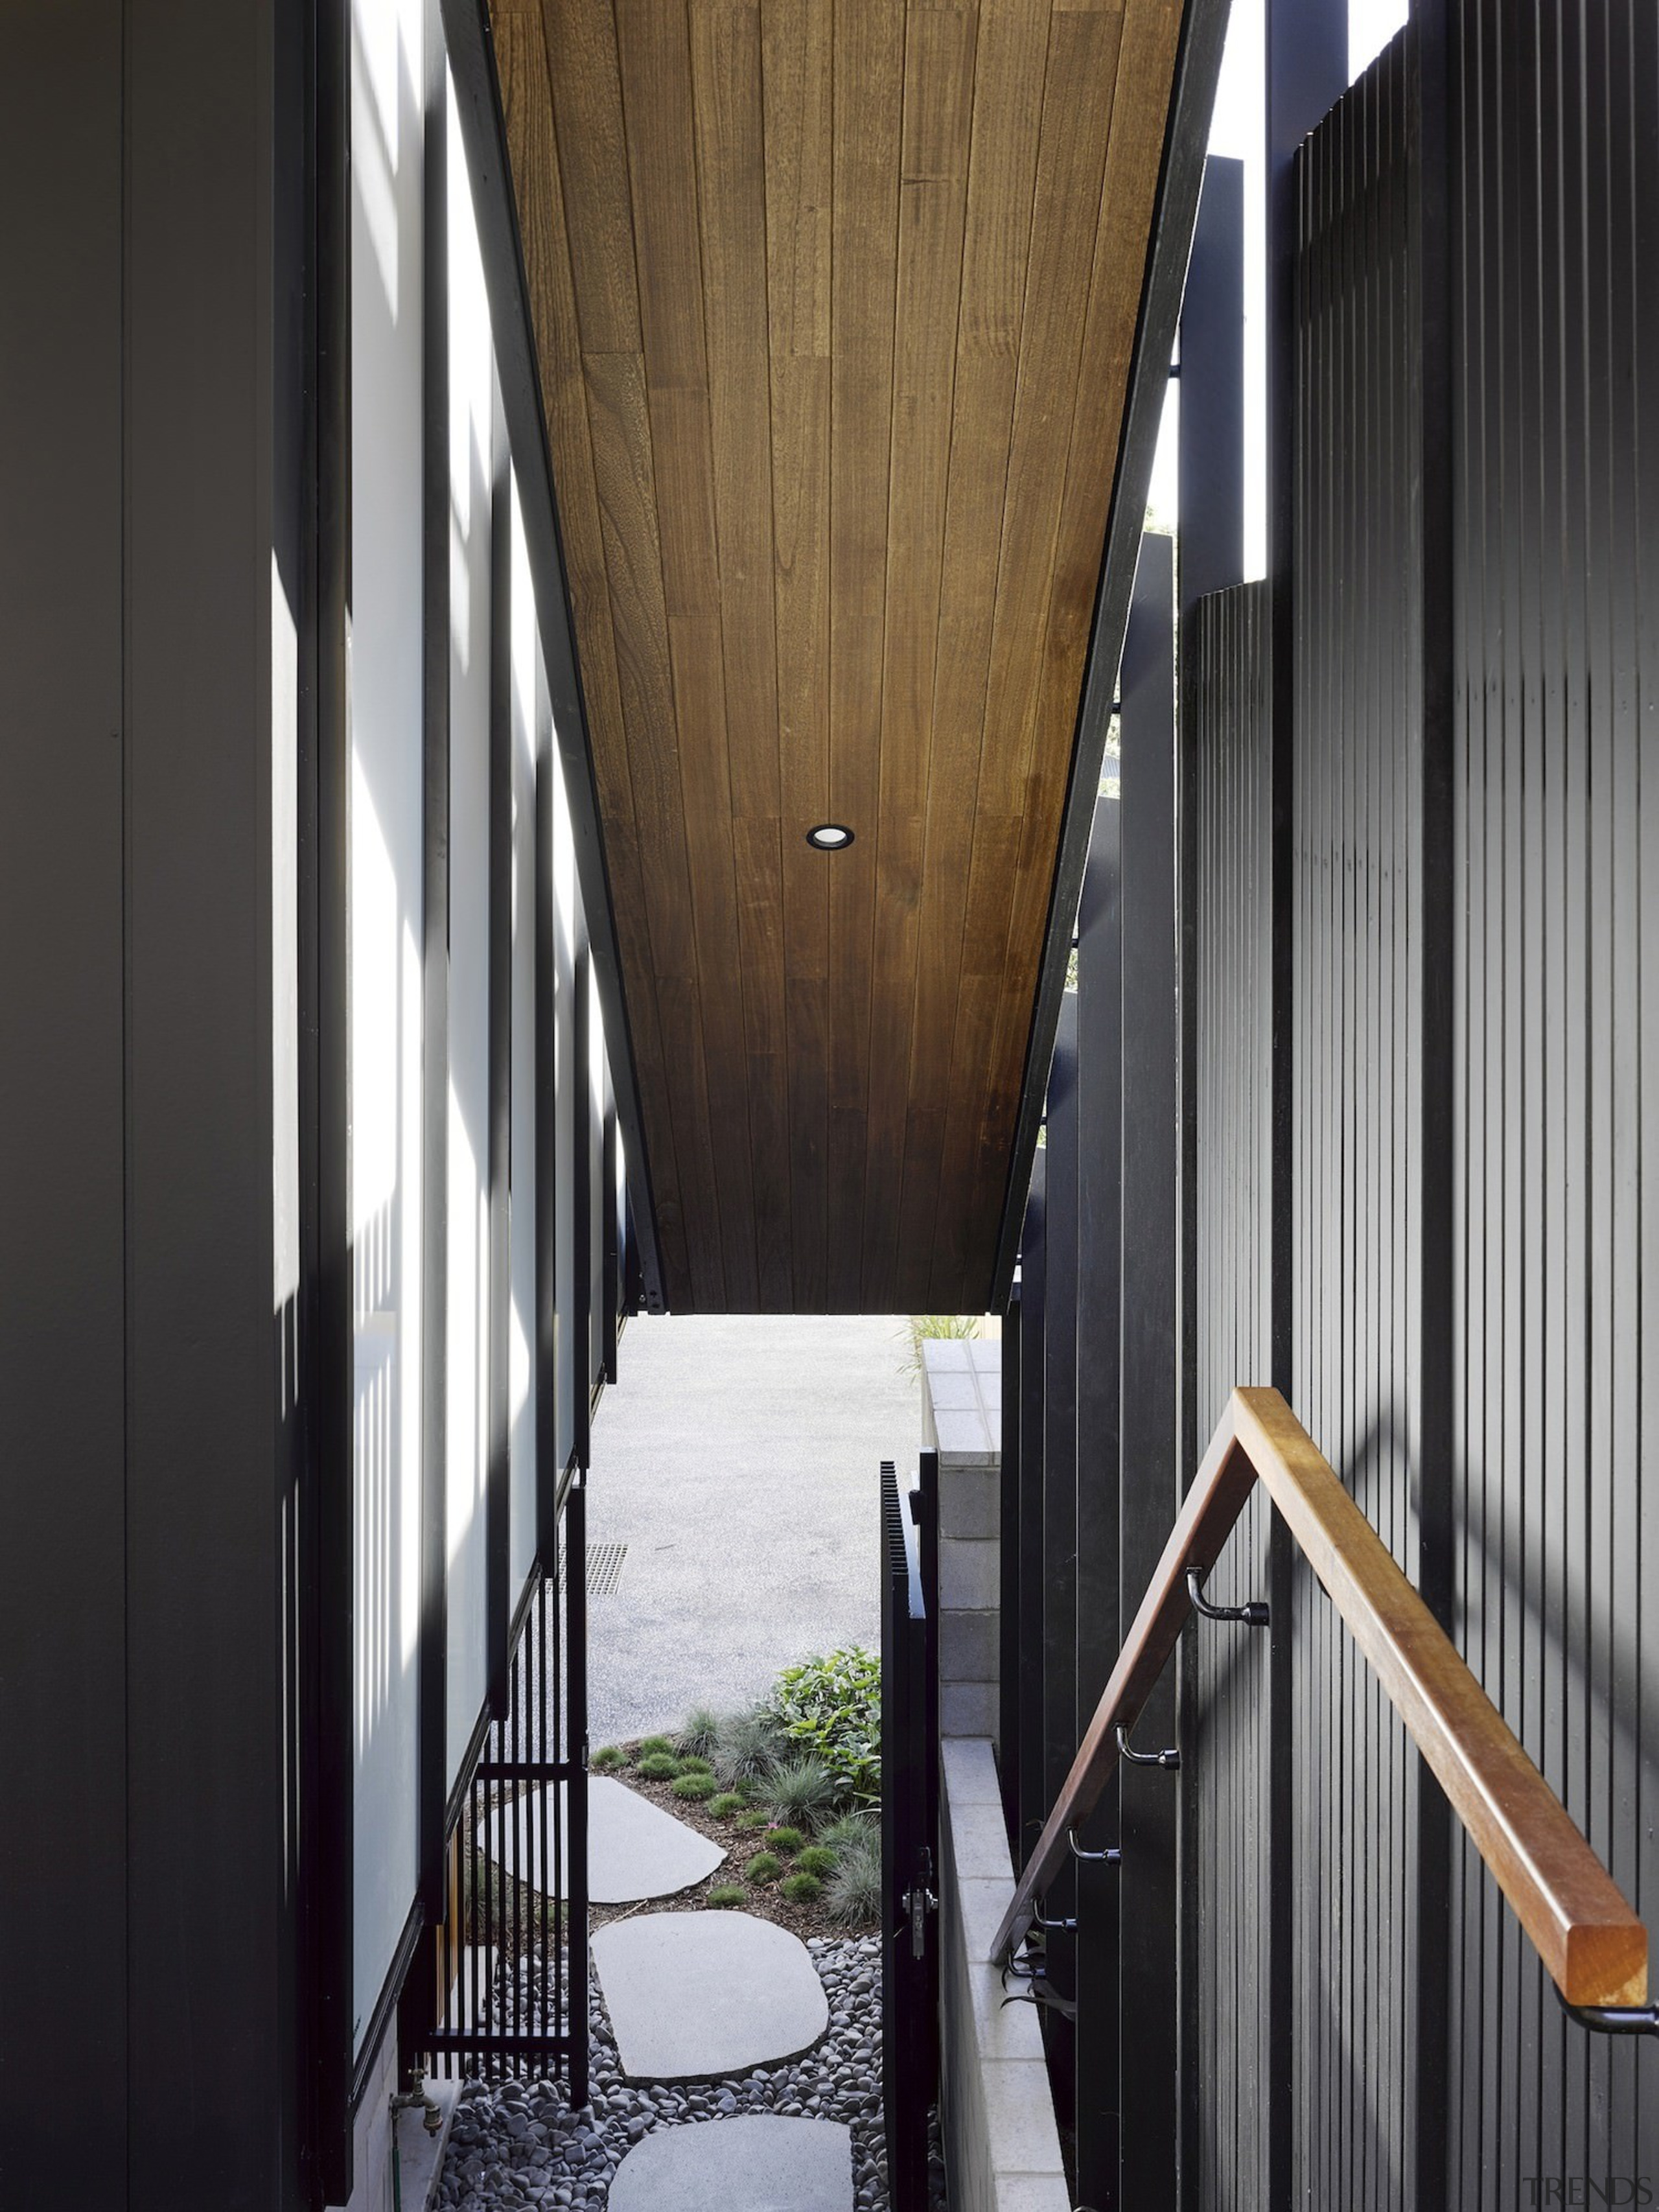 Architect: Refresh DesignPhotography by Roger D'Souza architecture, building, daylighting, facade, house, structure, window, wood, black